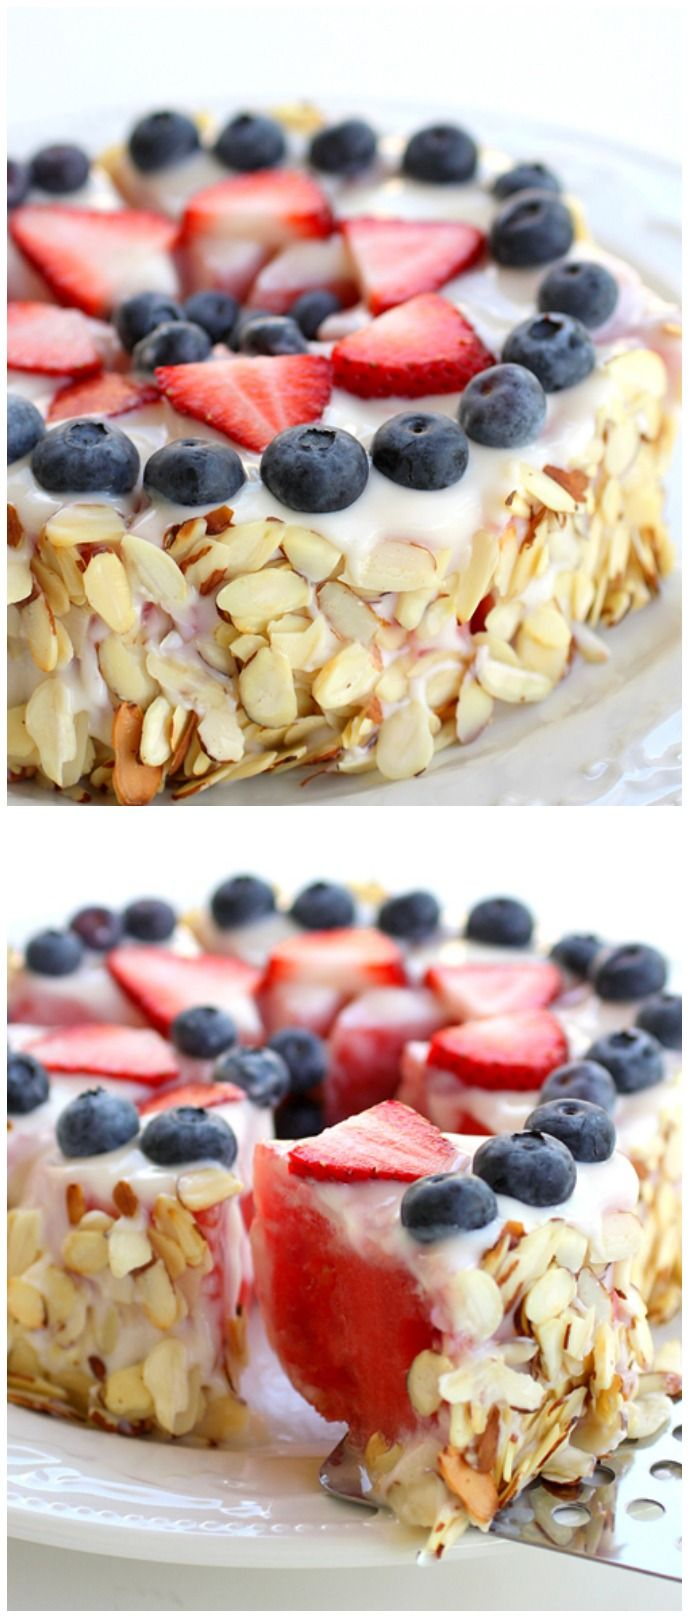 92 best July 4th Ideas images on Pinterest | July crafts ...